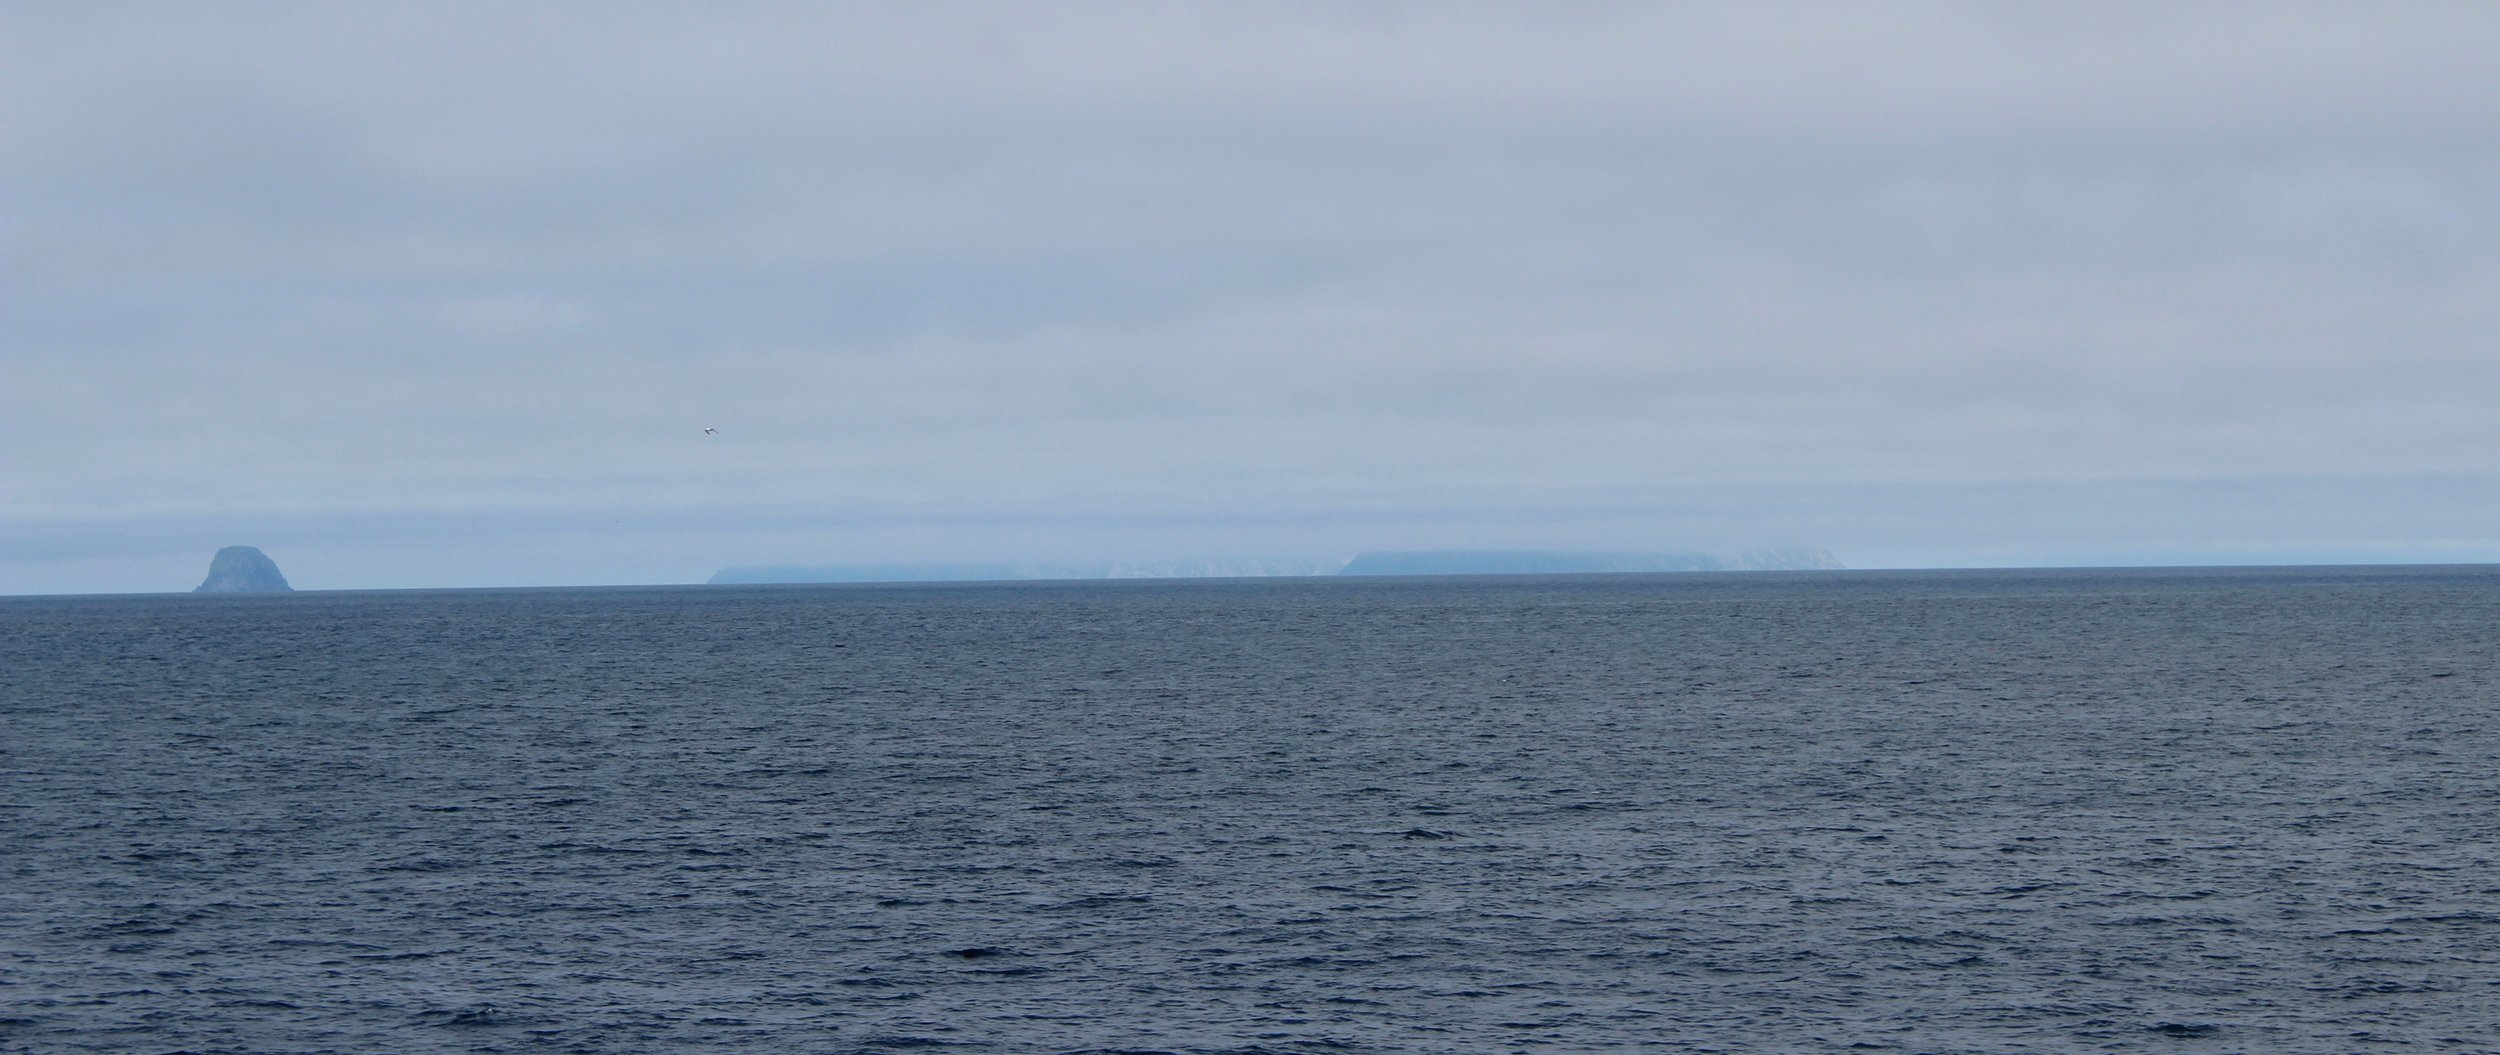 Little Diomede Island and Russia in the distance as seen while passing through the Bering Strait. Photo credit: Harmony Wayner